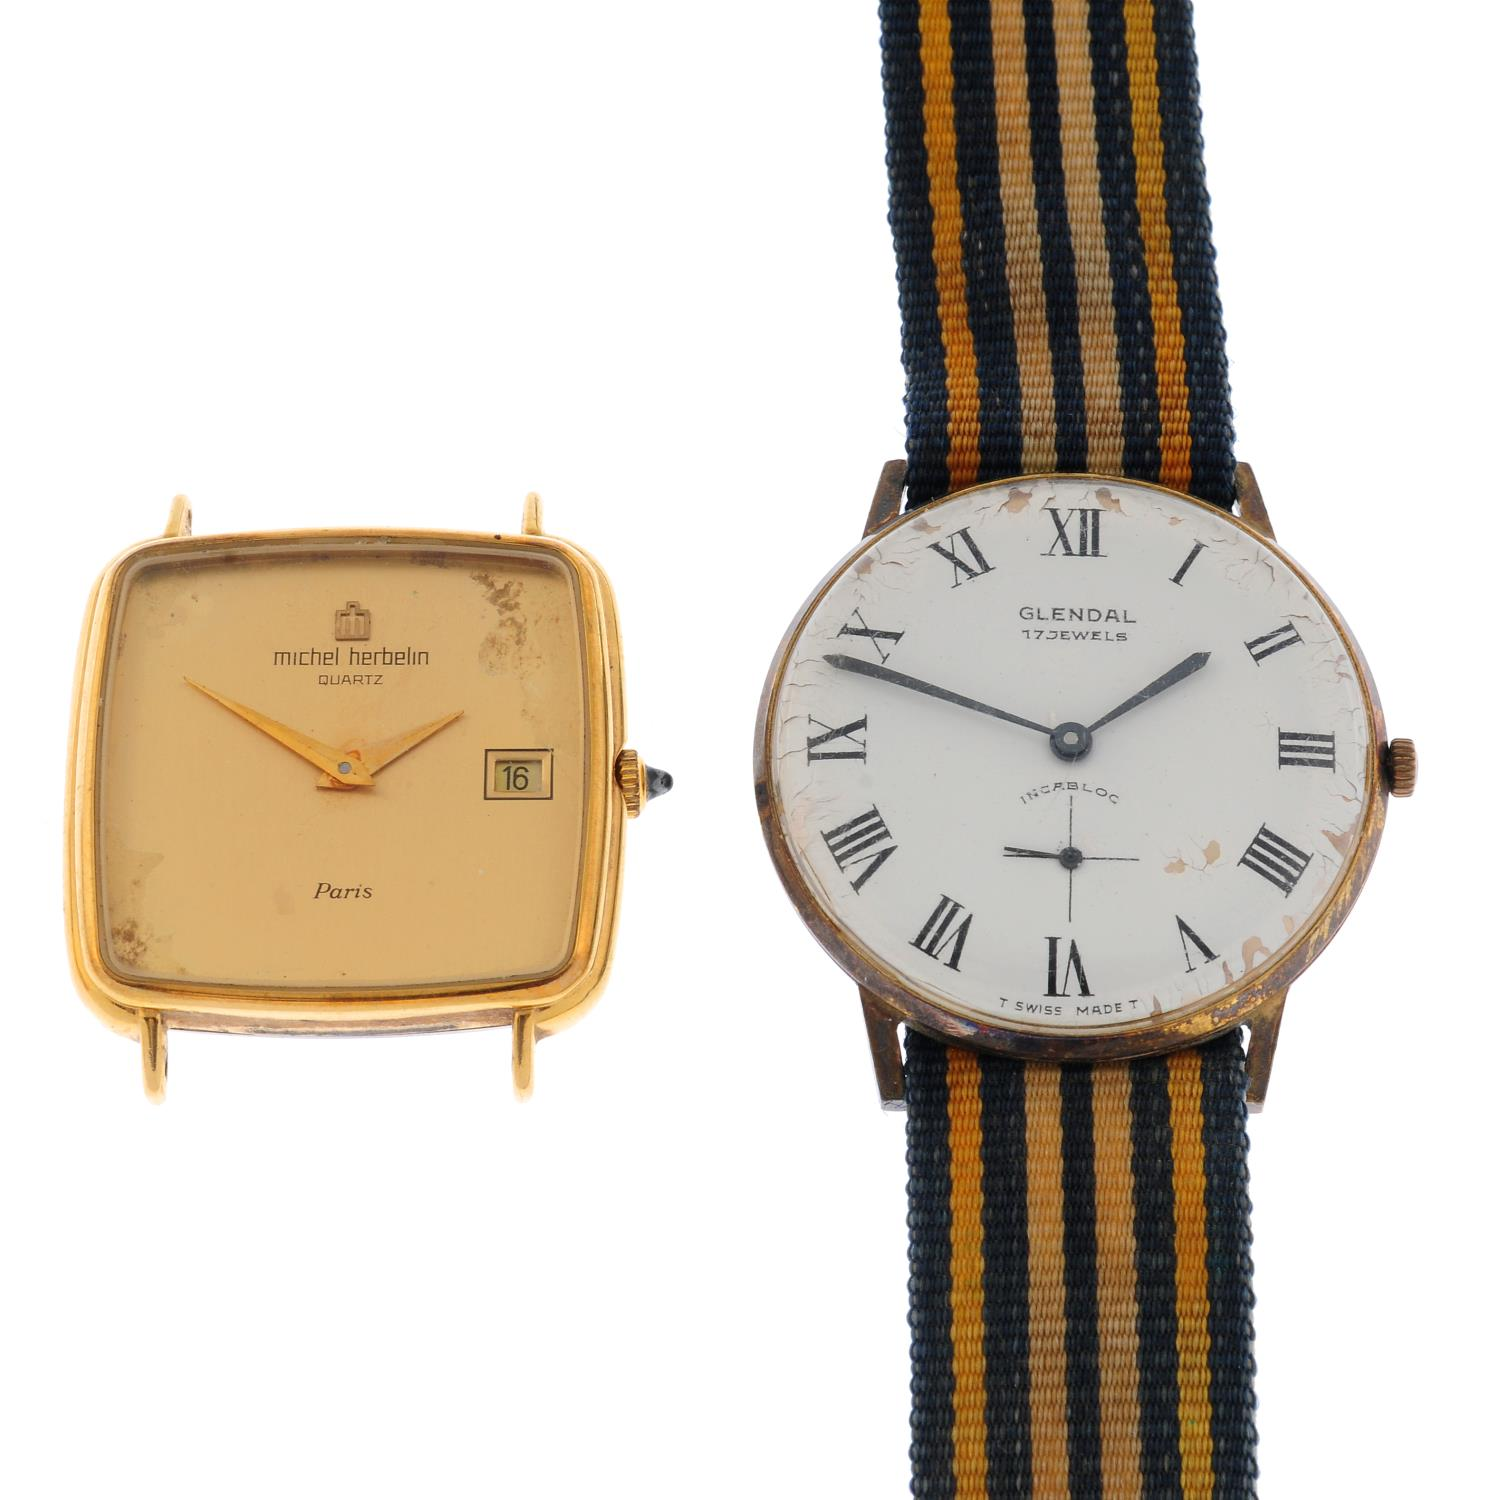 A group of five wrist watches, to include an example by Enicar and Tissot. - Image 3 of 4